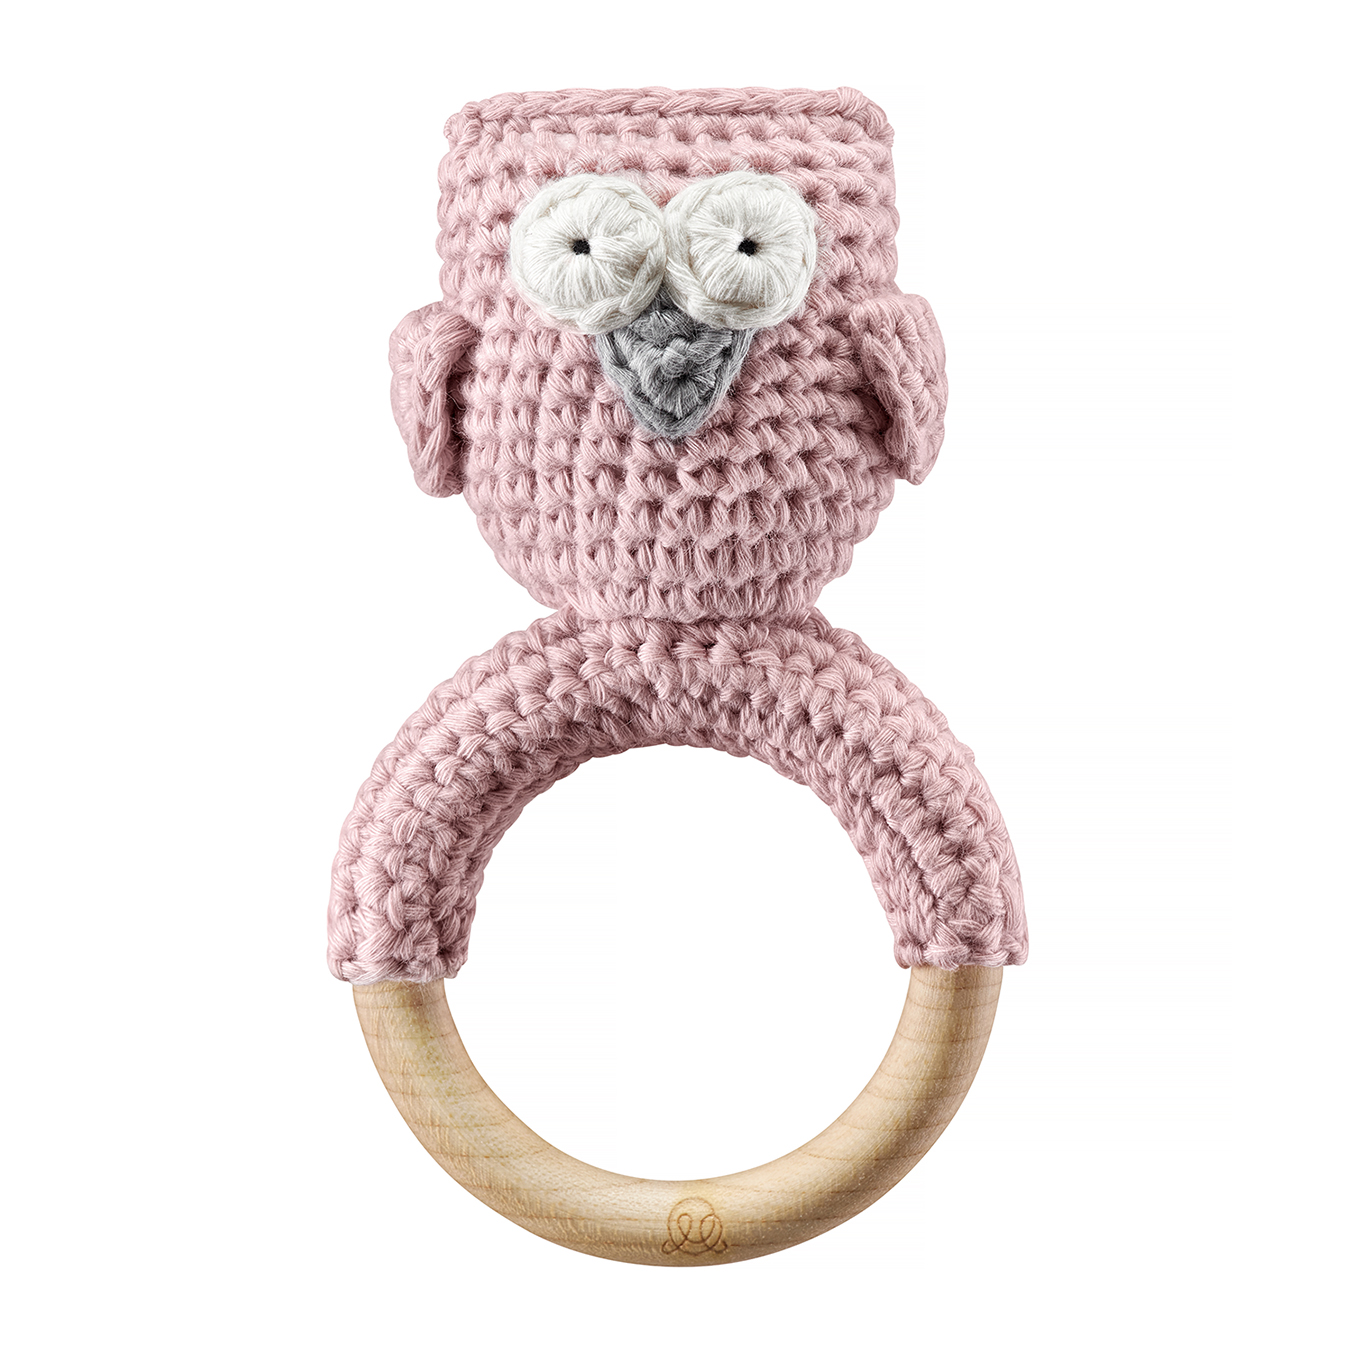 Rattle teether Owl Dusty pink